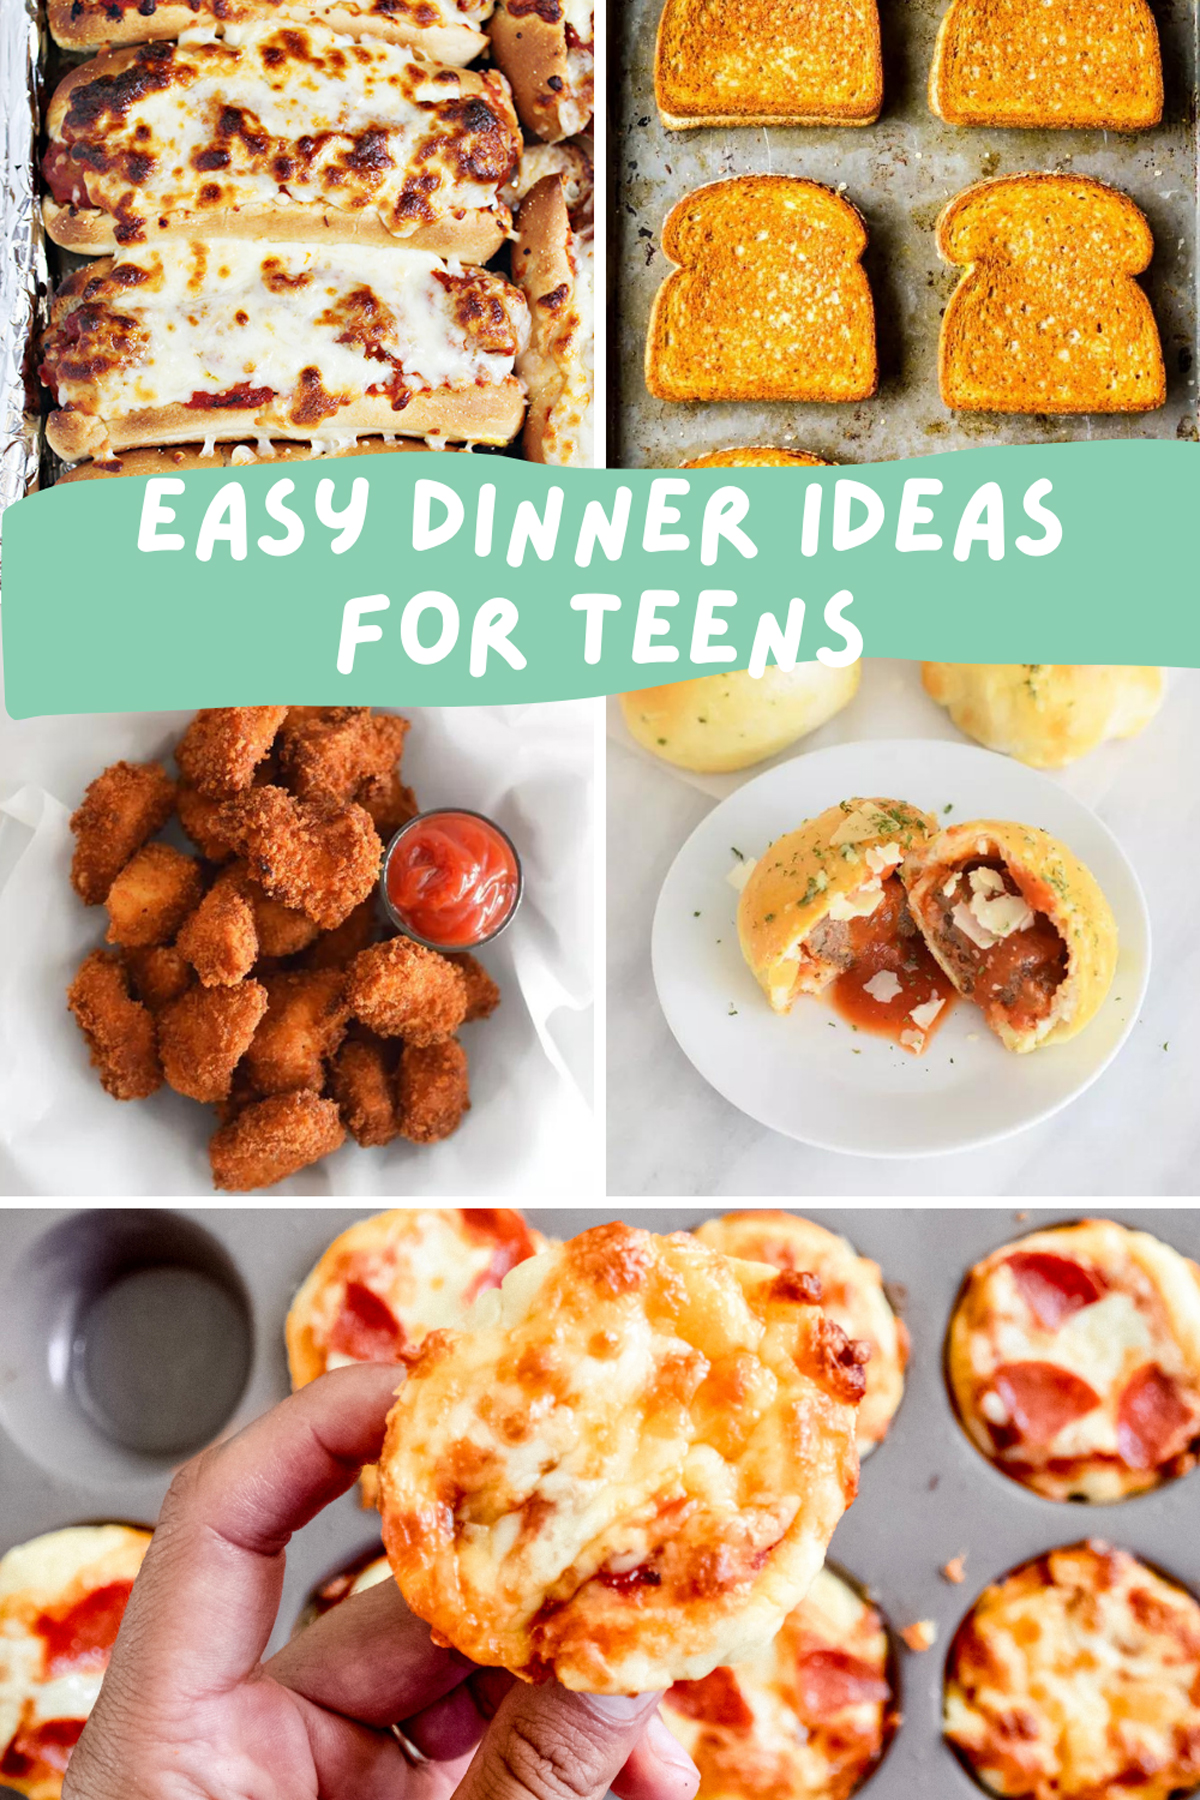 Easy Dinner Ideas for Teens To Make At Home